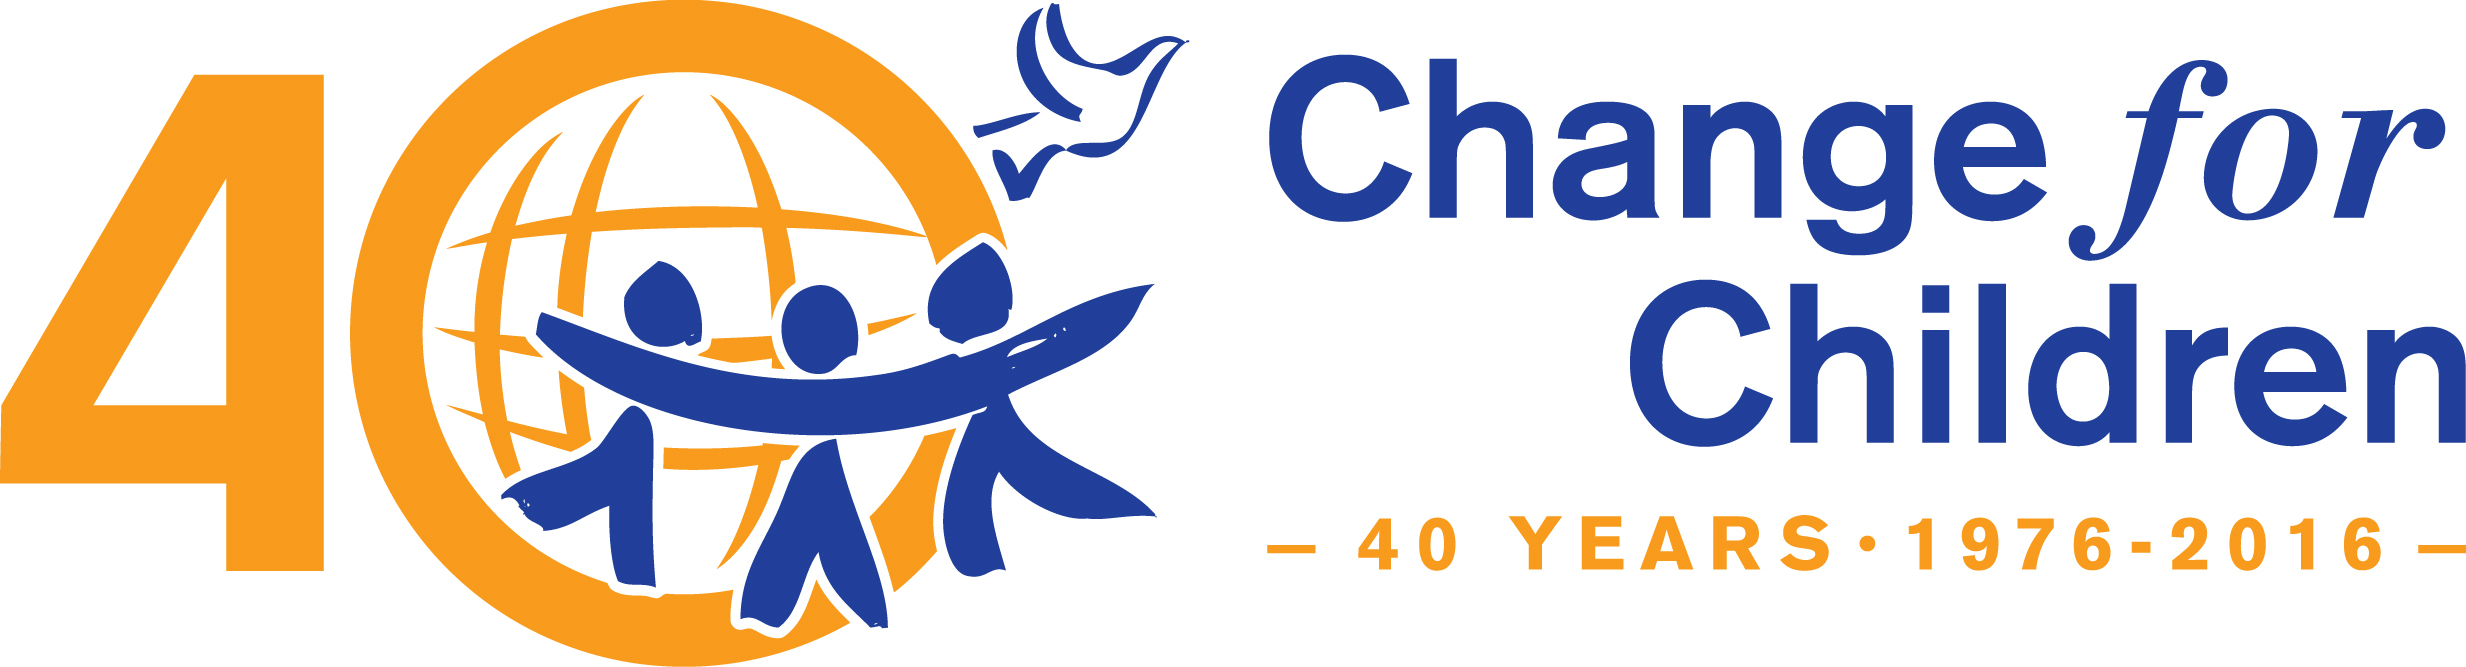 Change for Children - Logo